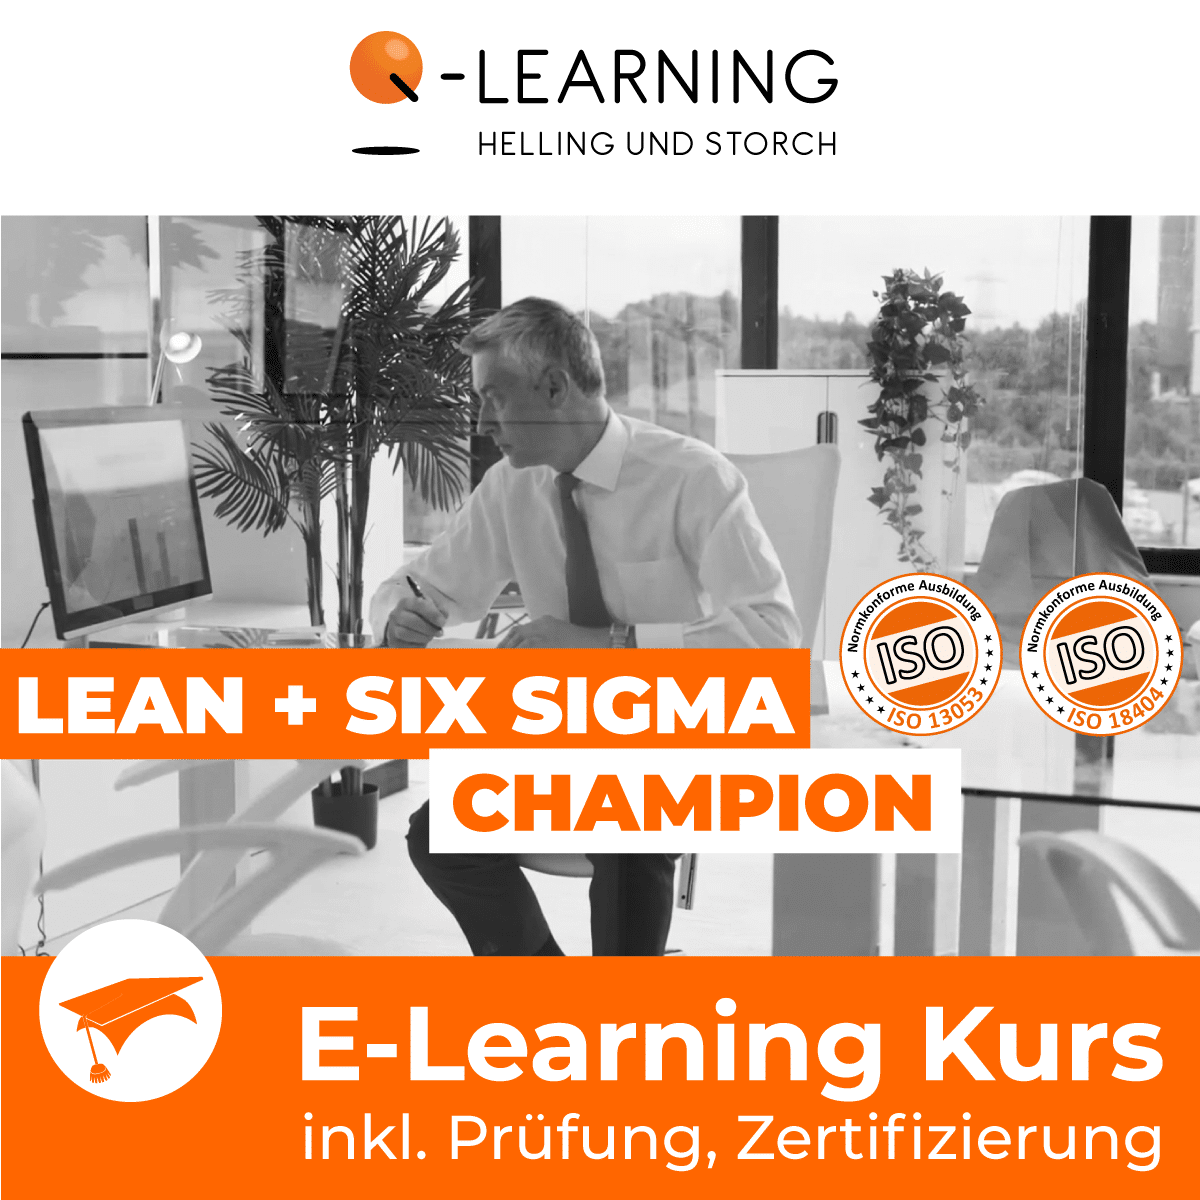 Produktbild LEAN + SIX SIGMA CHAMPION E-Learning Kurs